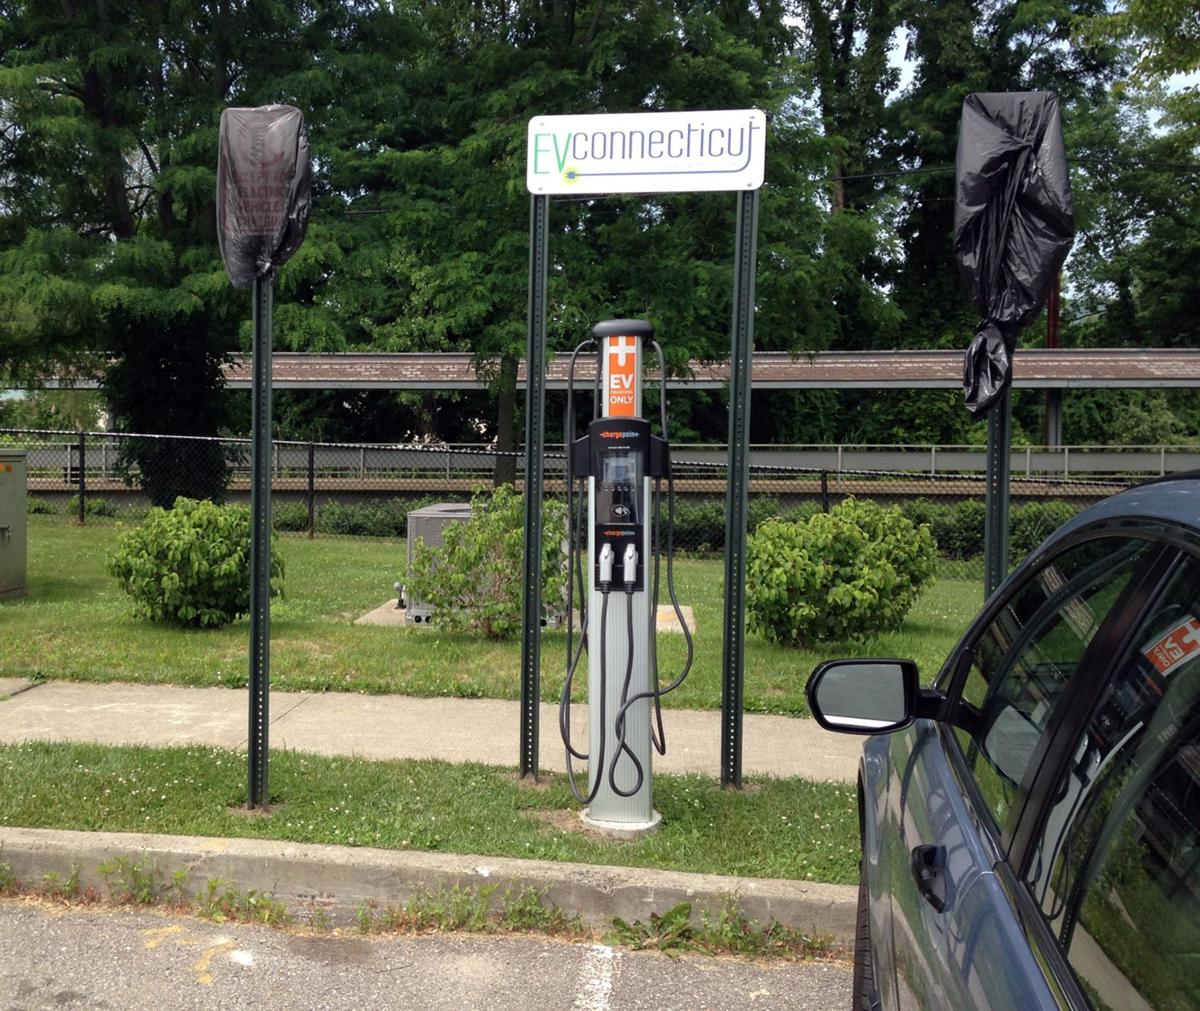 Robert Miller: More electric car charging stations on the way